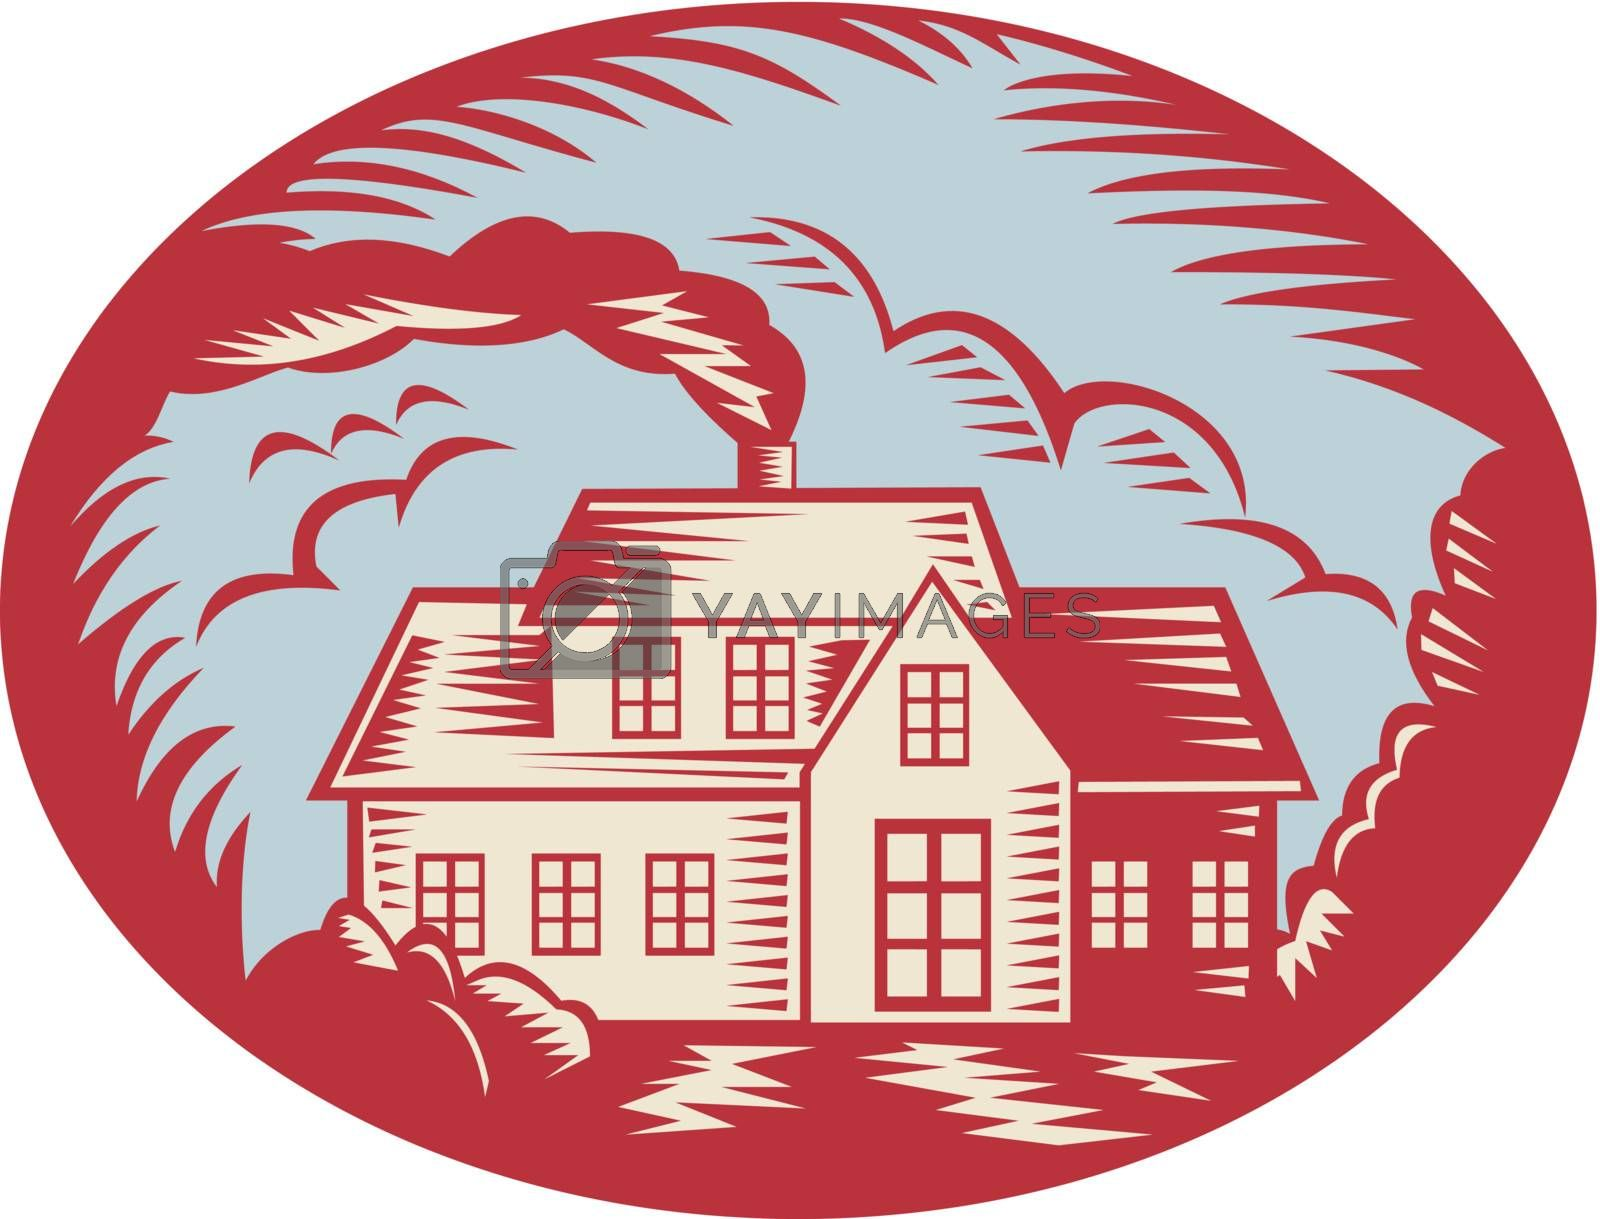 Retro illustration of a house homestead cottage viewed from front set inside ellipse oval done in woodcut style.